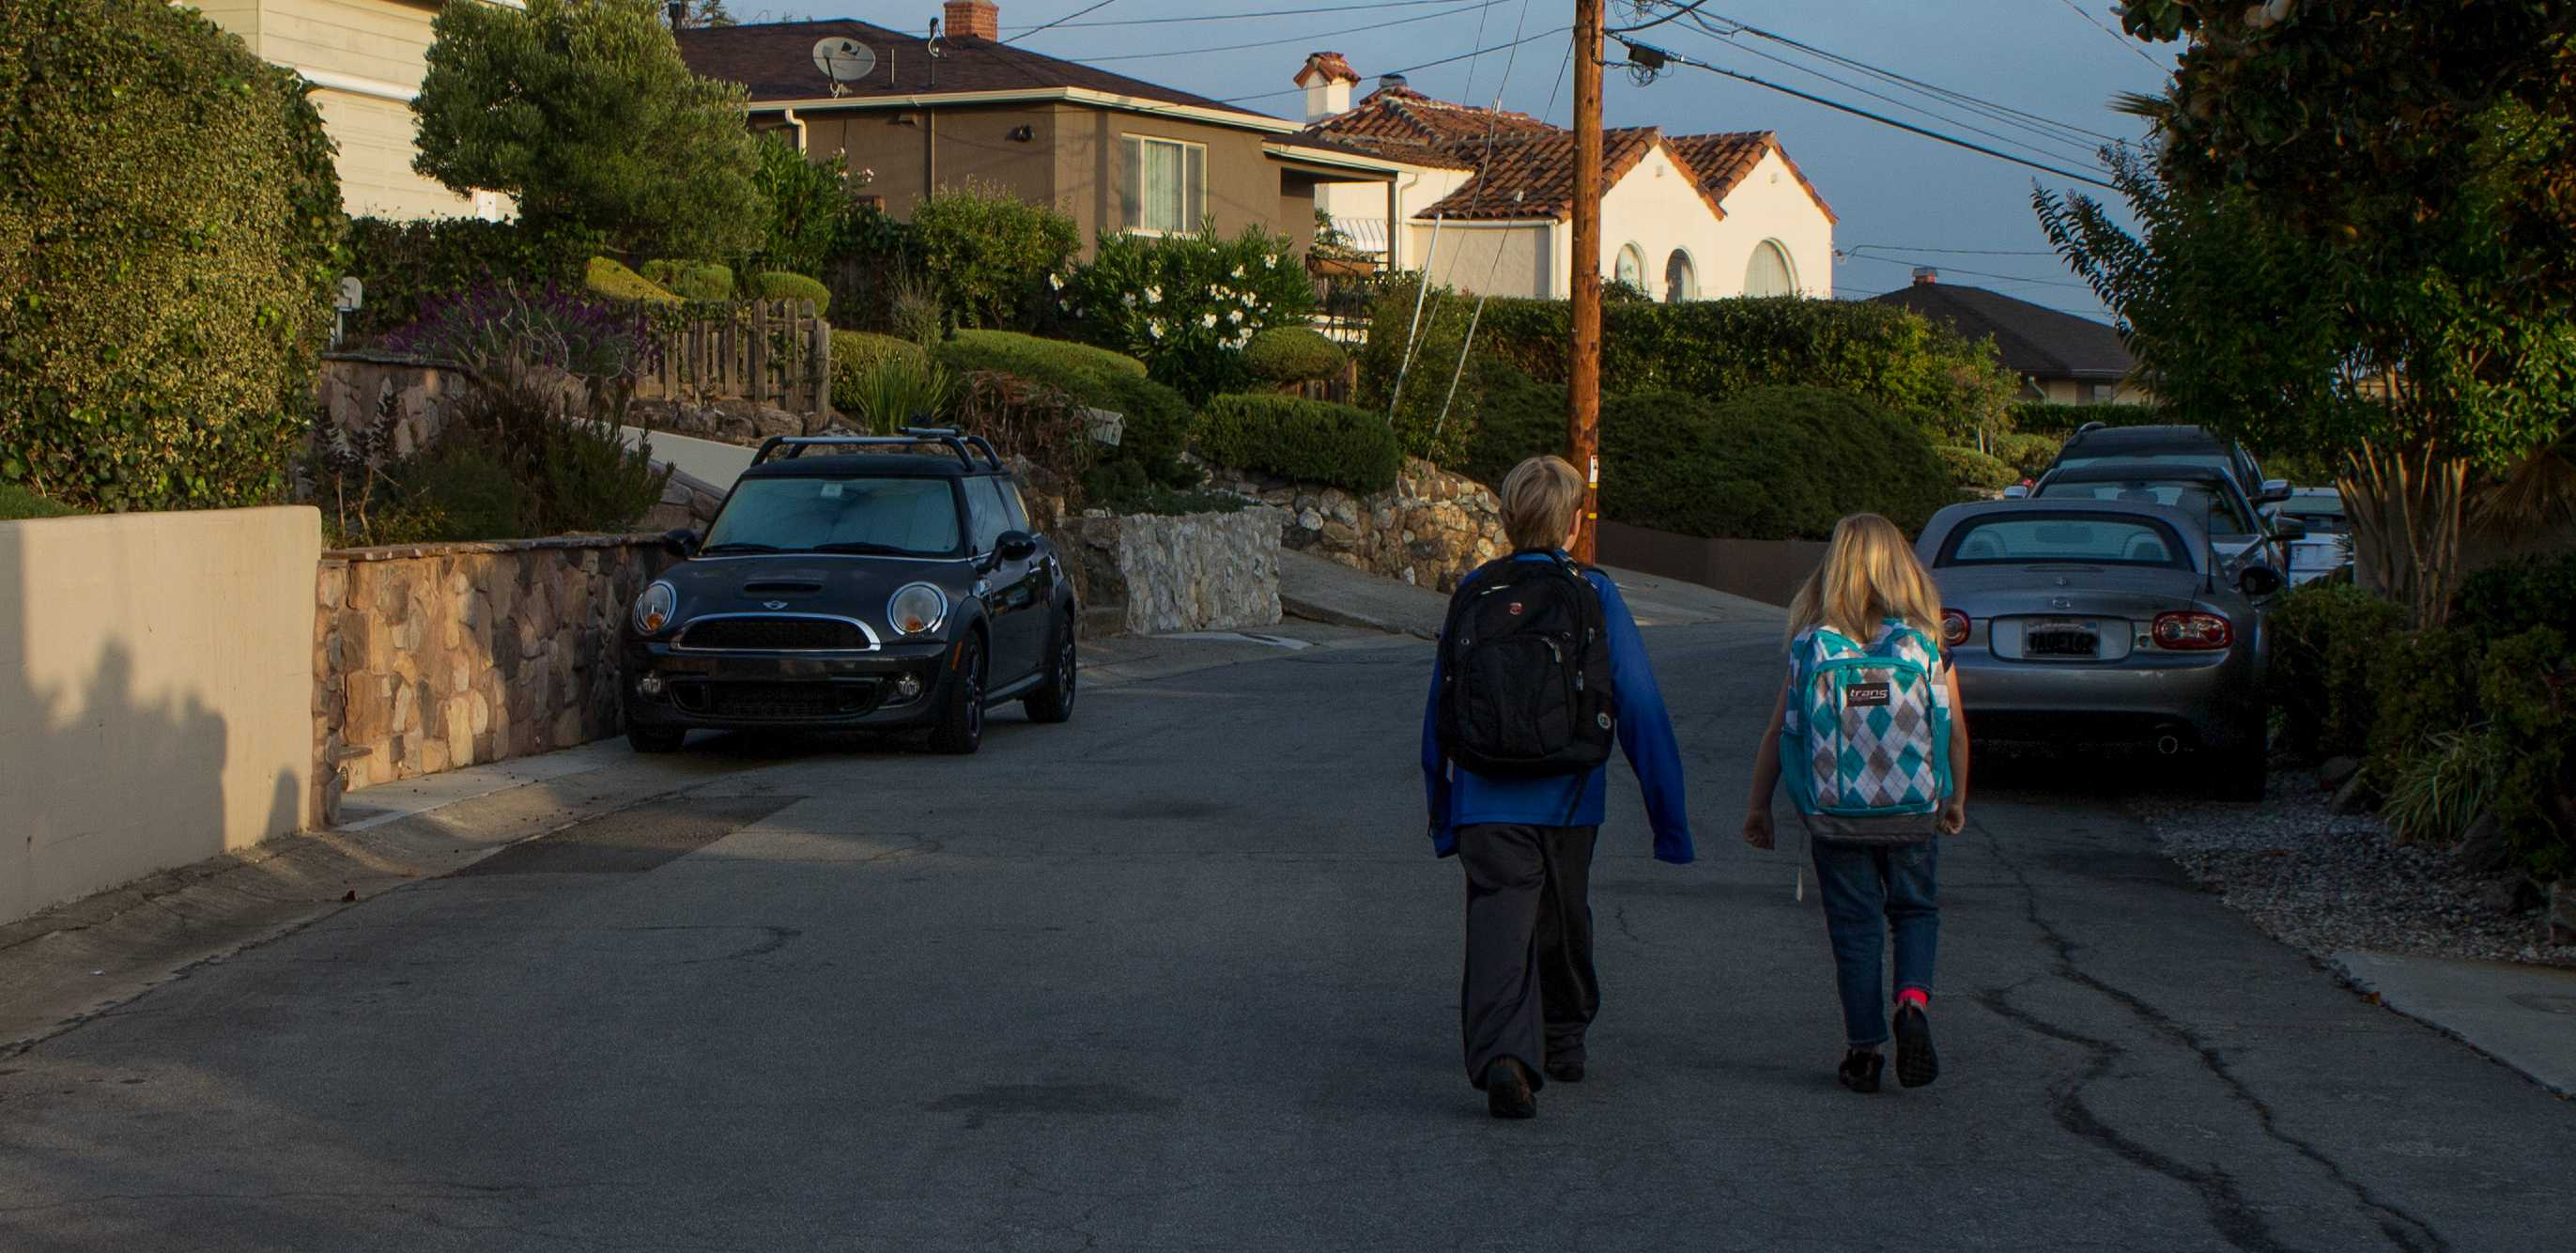 Students Athena and Liam Frederick walked to school on International Walk to School Day.